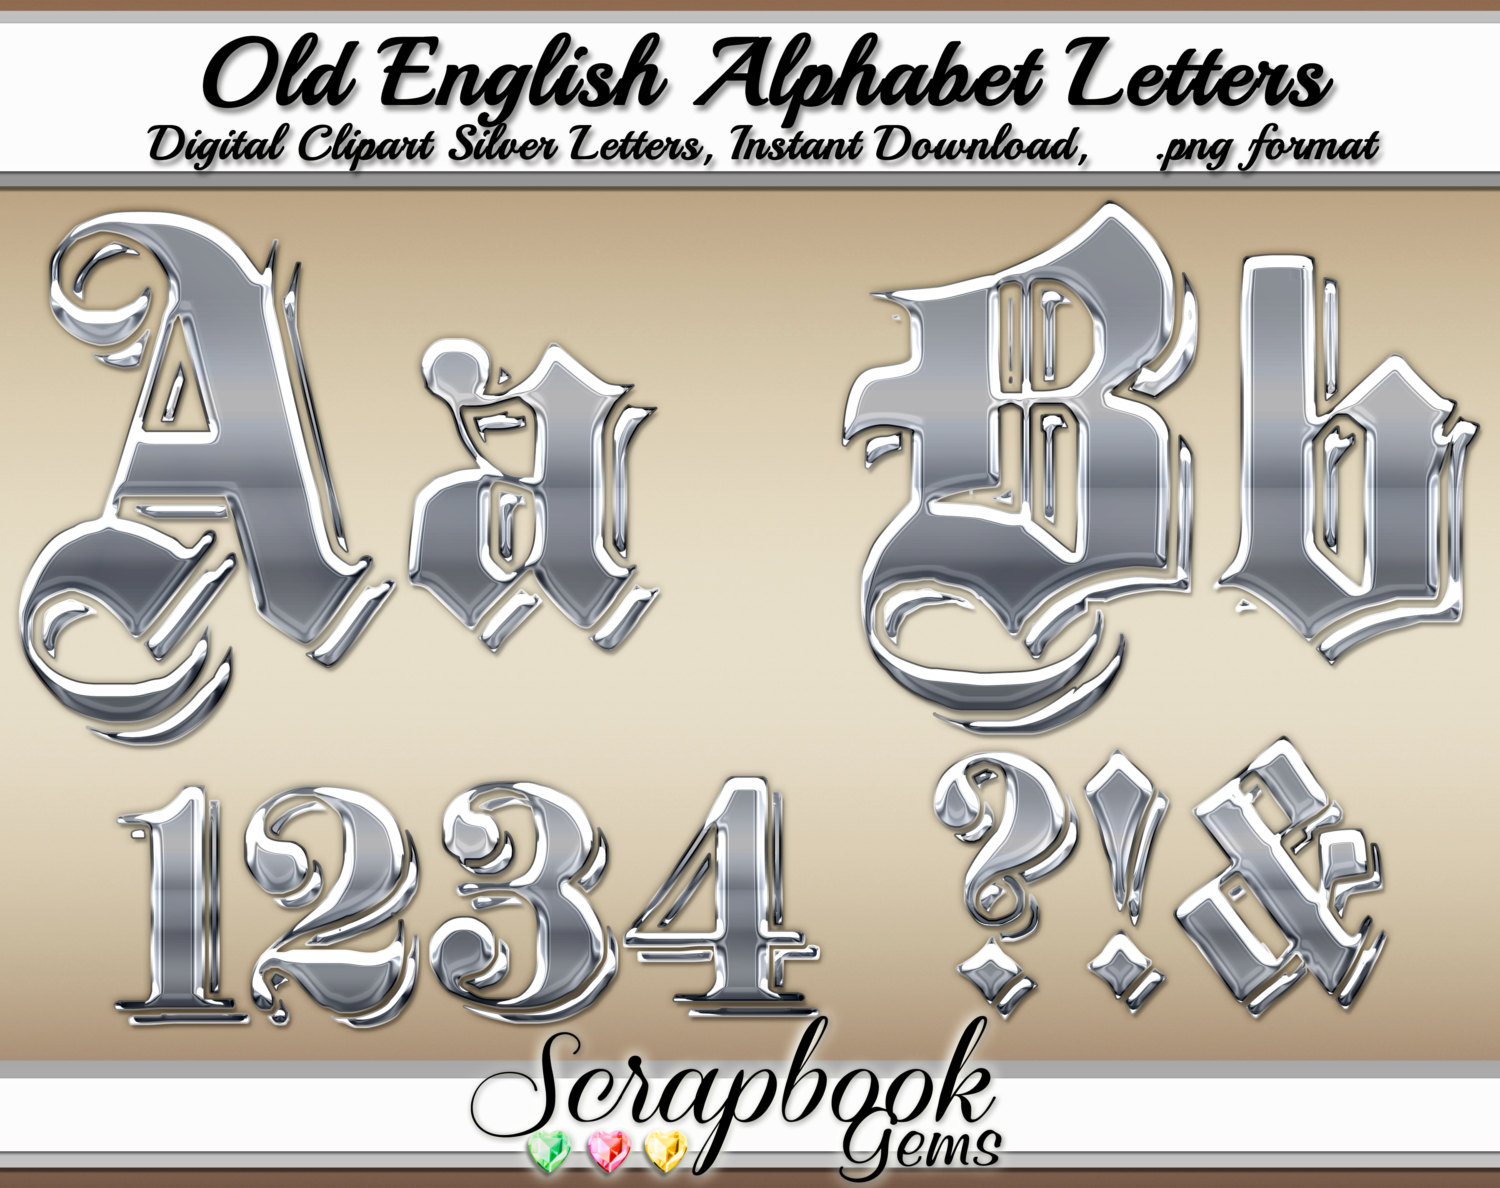 Old Letter clipart business letter And numbers  glitter Digital